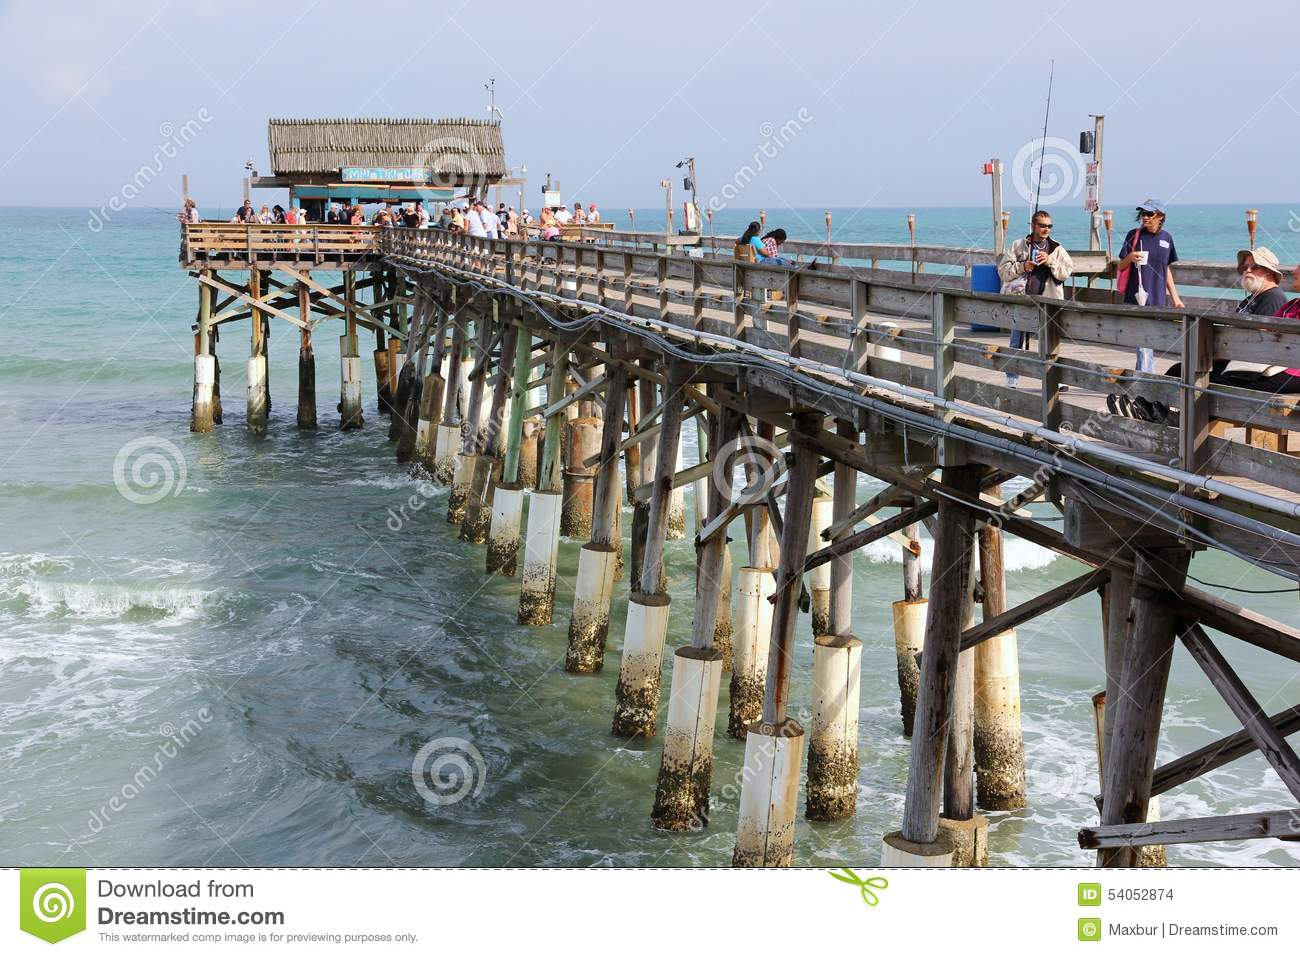 Cocoa beach fishing pier editorial stock image image for Cocoa beach fishing pier